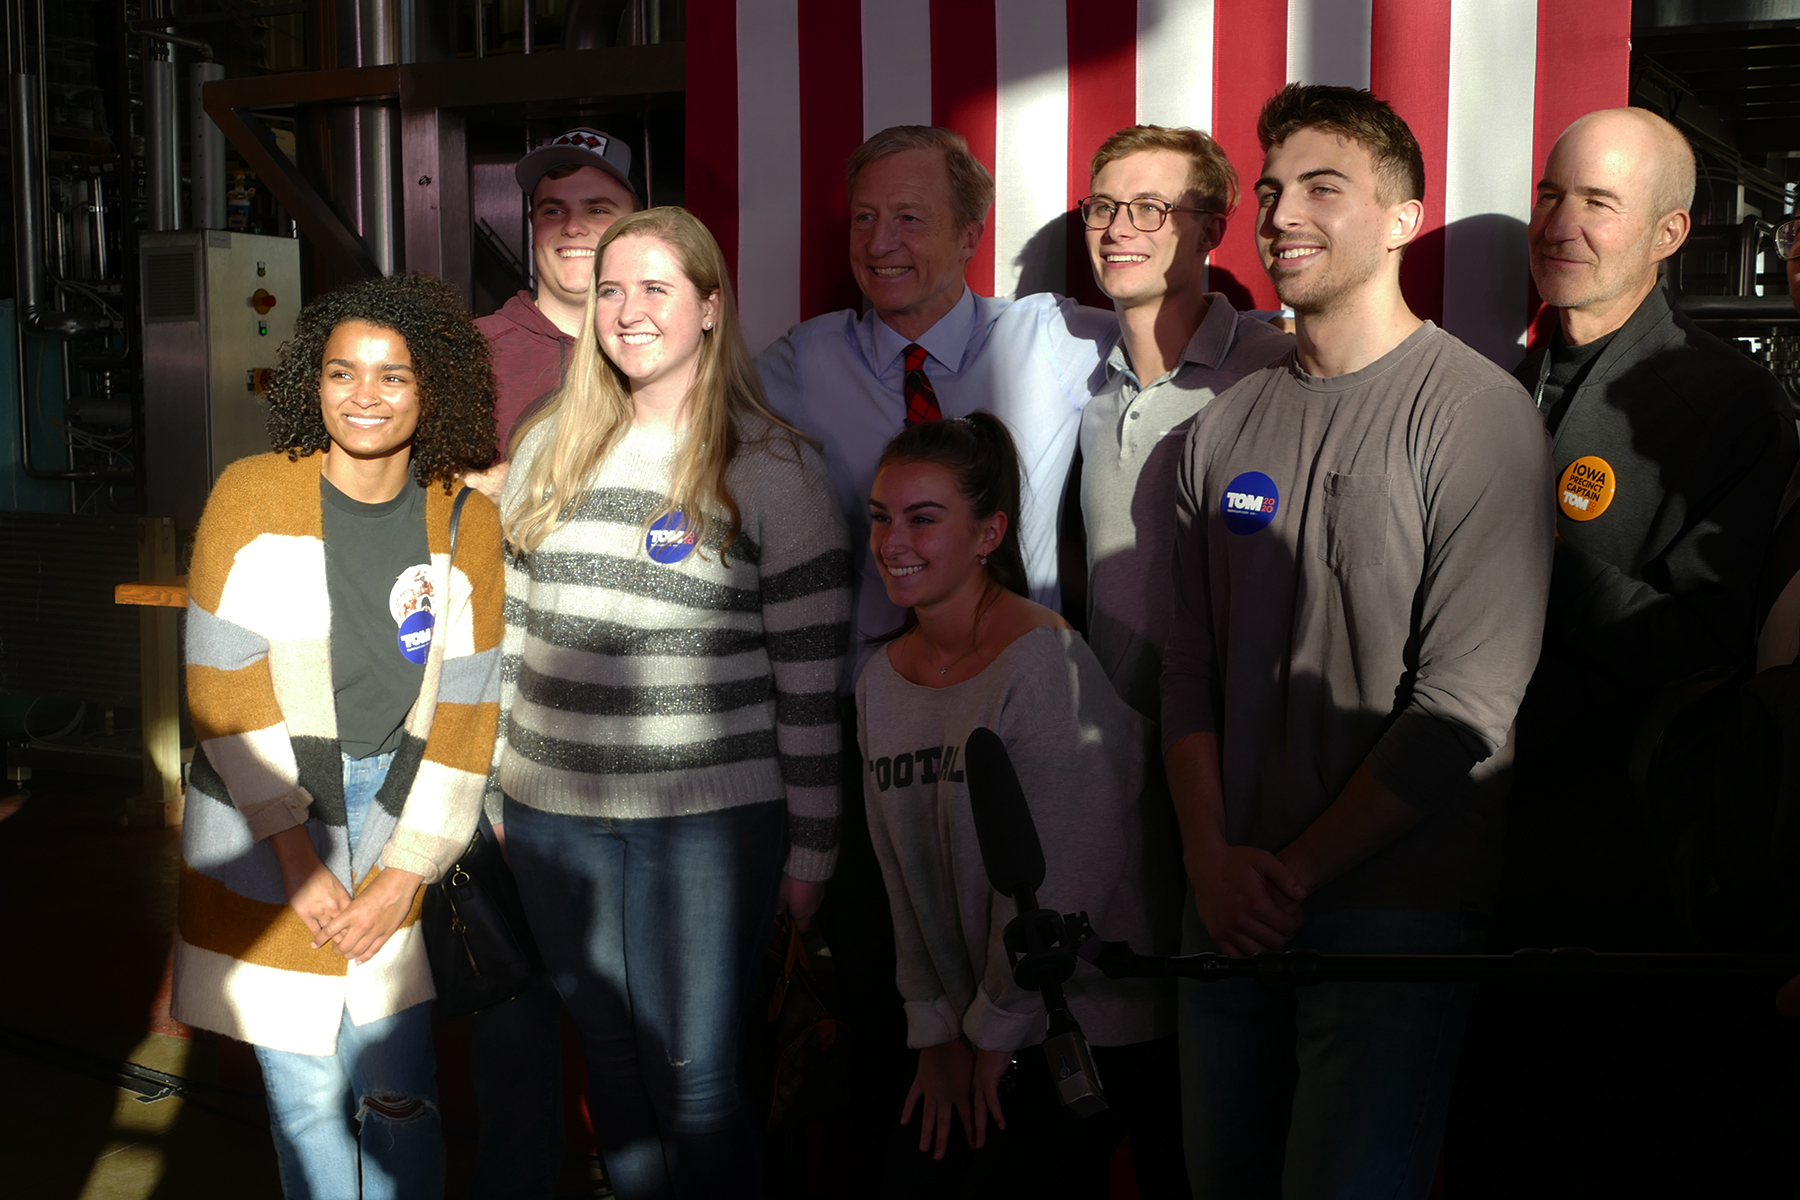 Steyer taking photos with voters. (Marissa Nelson, 14 East)